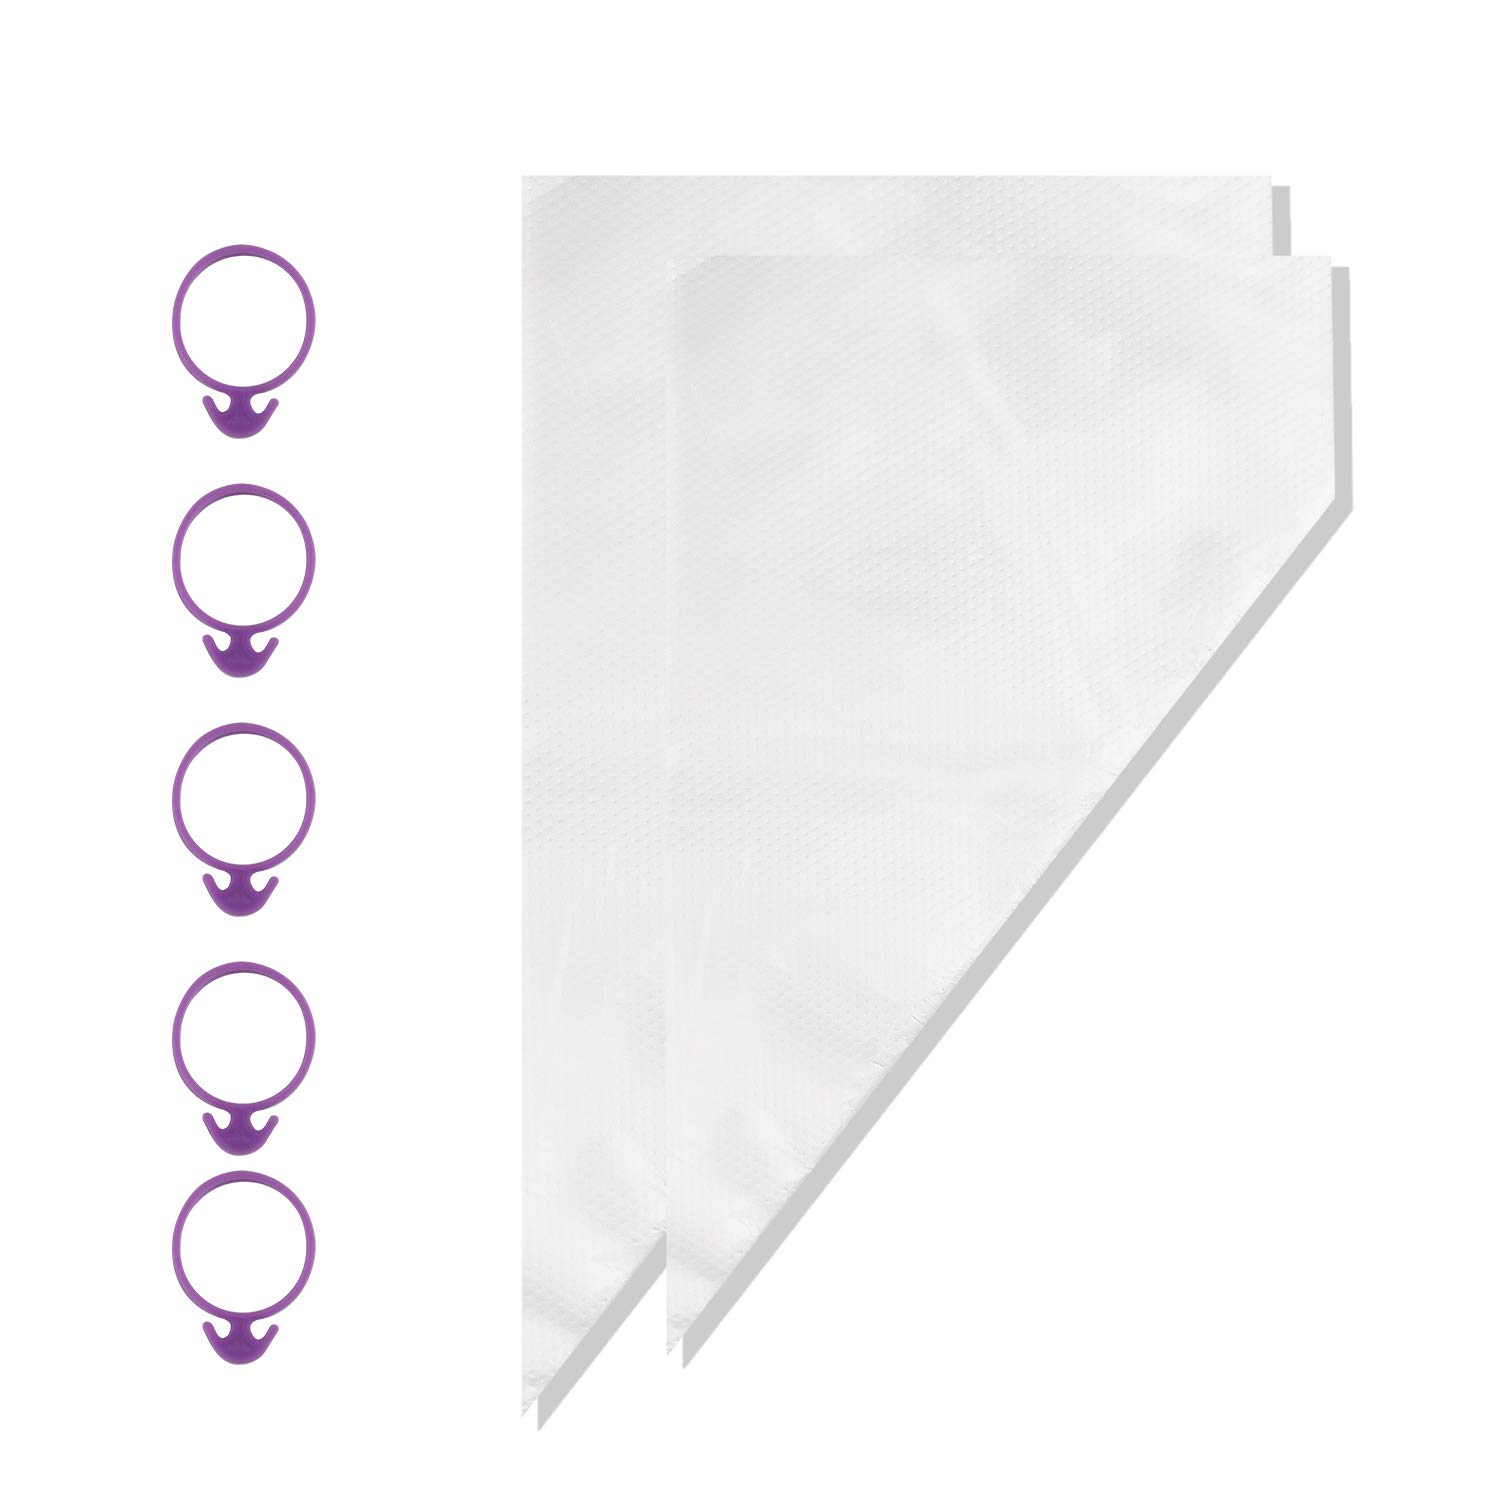 Shitailu 200pcs Pastry Bag,16-Inch Thicken Large Cake Decorating Bags, Disposable Icing Piping Bags Set with 5 Icing Bag Ties